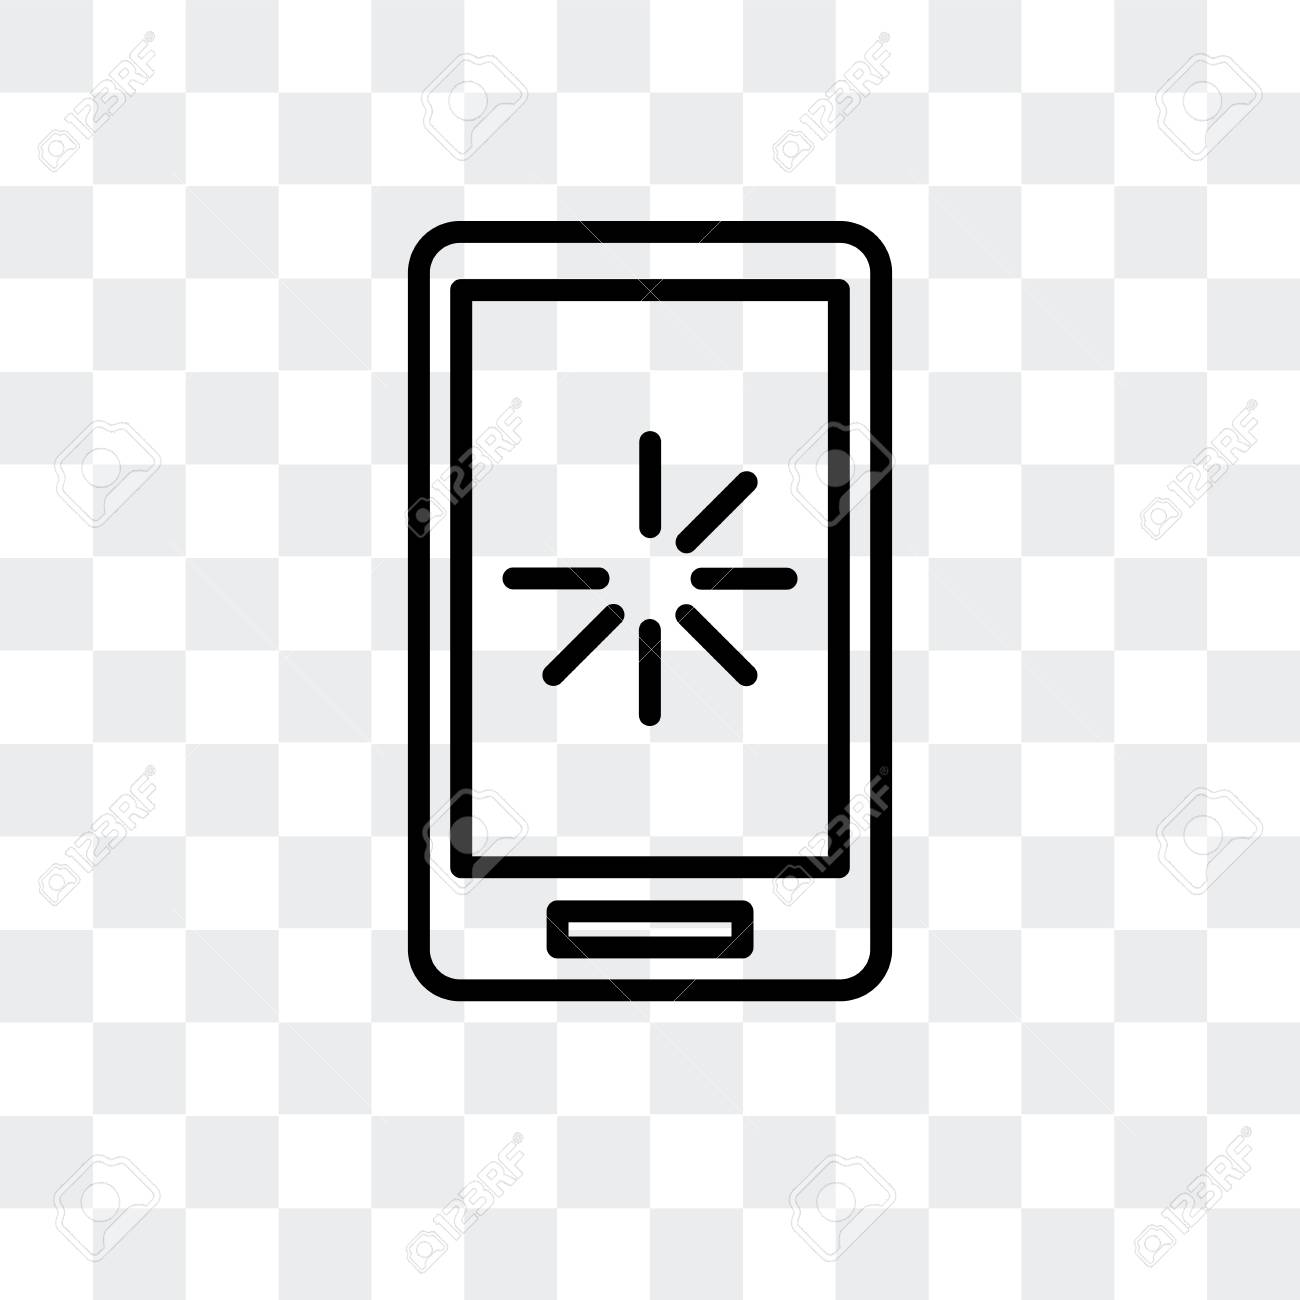 Smartphone Vector Icon Isolated On Transparent Background Smartphone